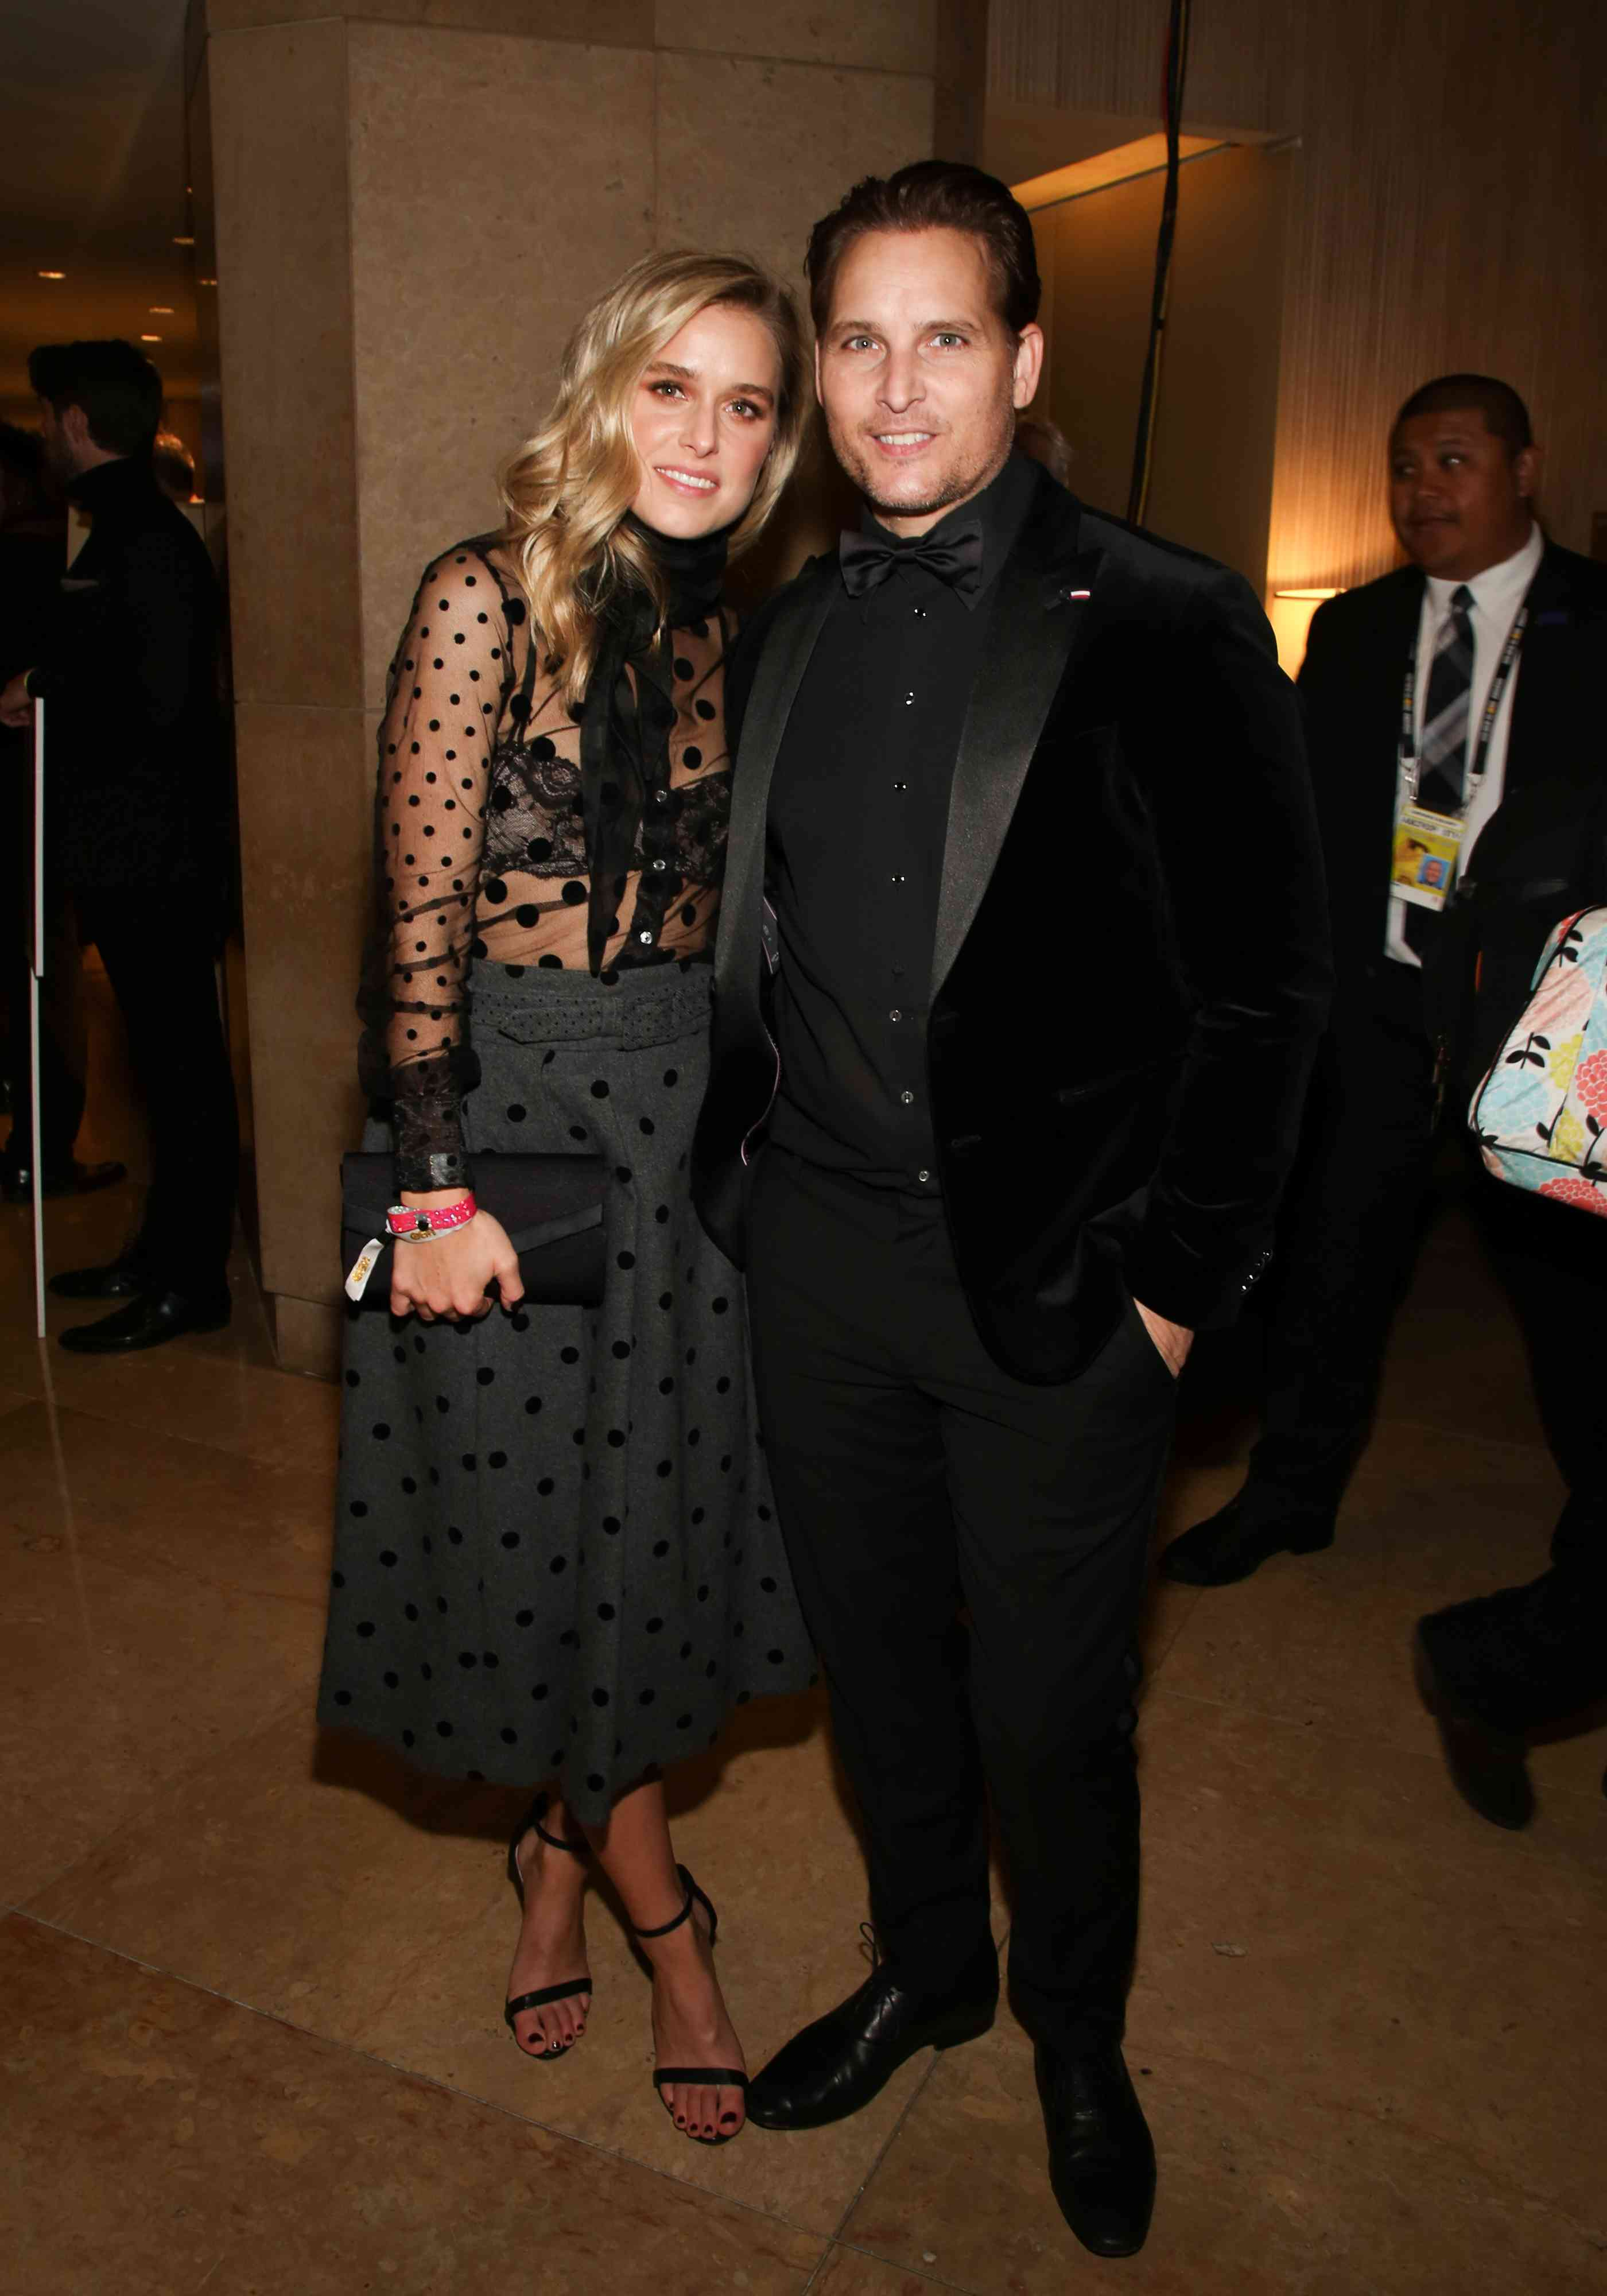 Peter Facinelli and Lily Anne Harrison